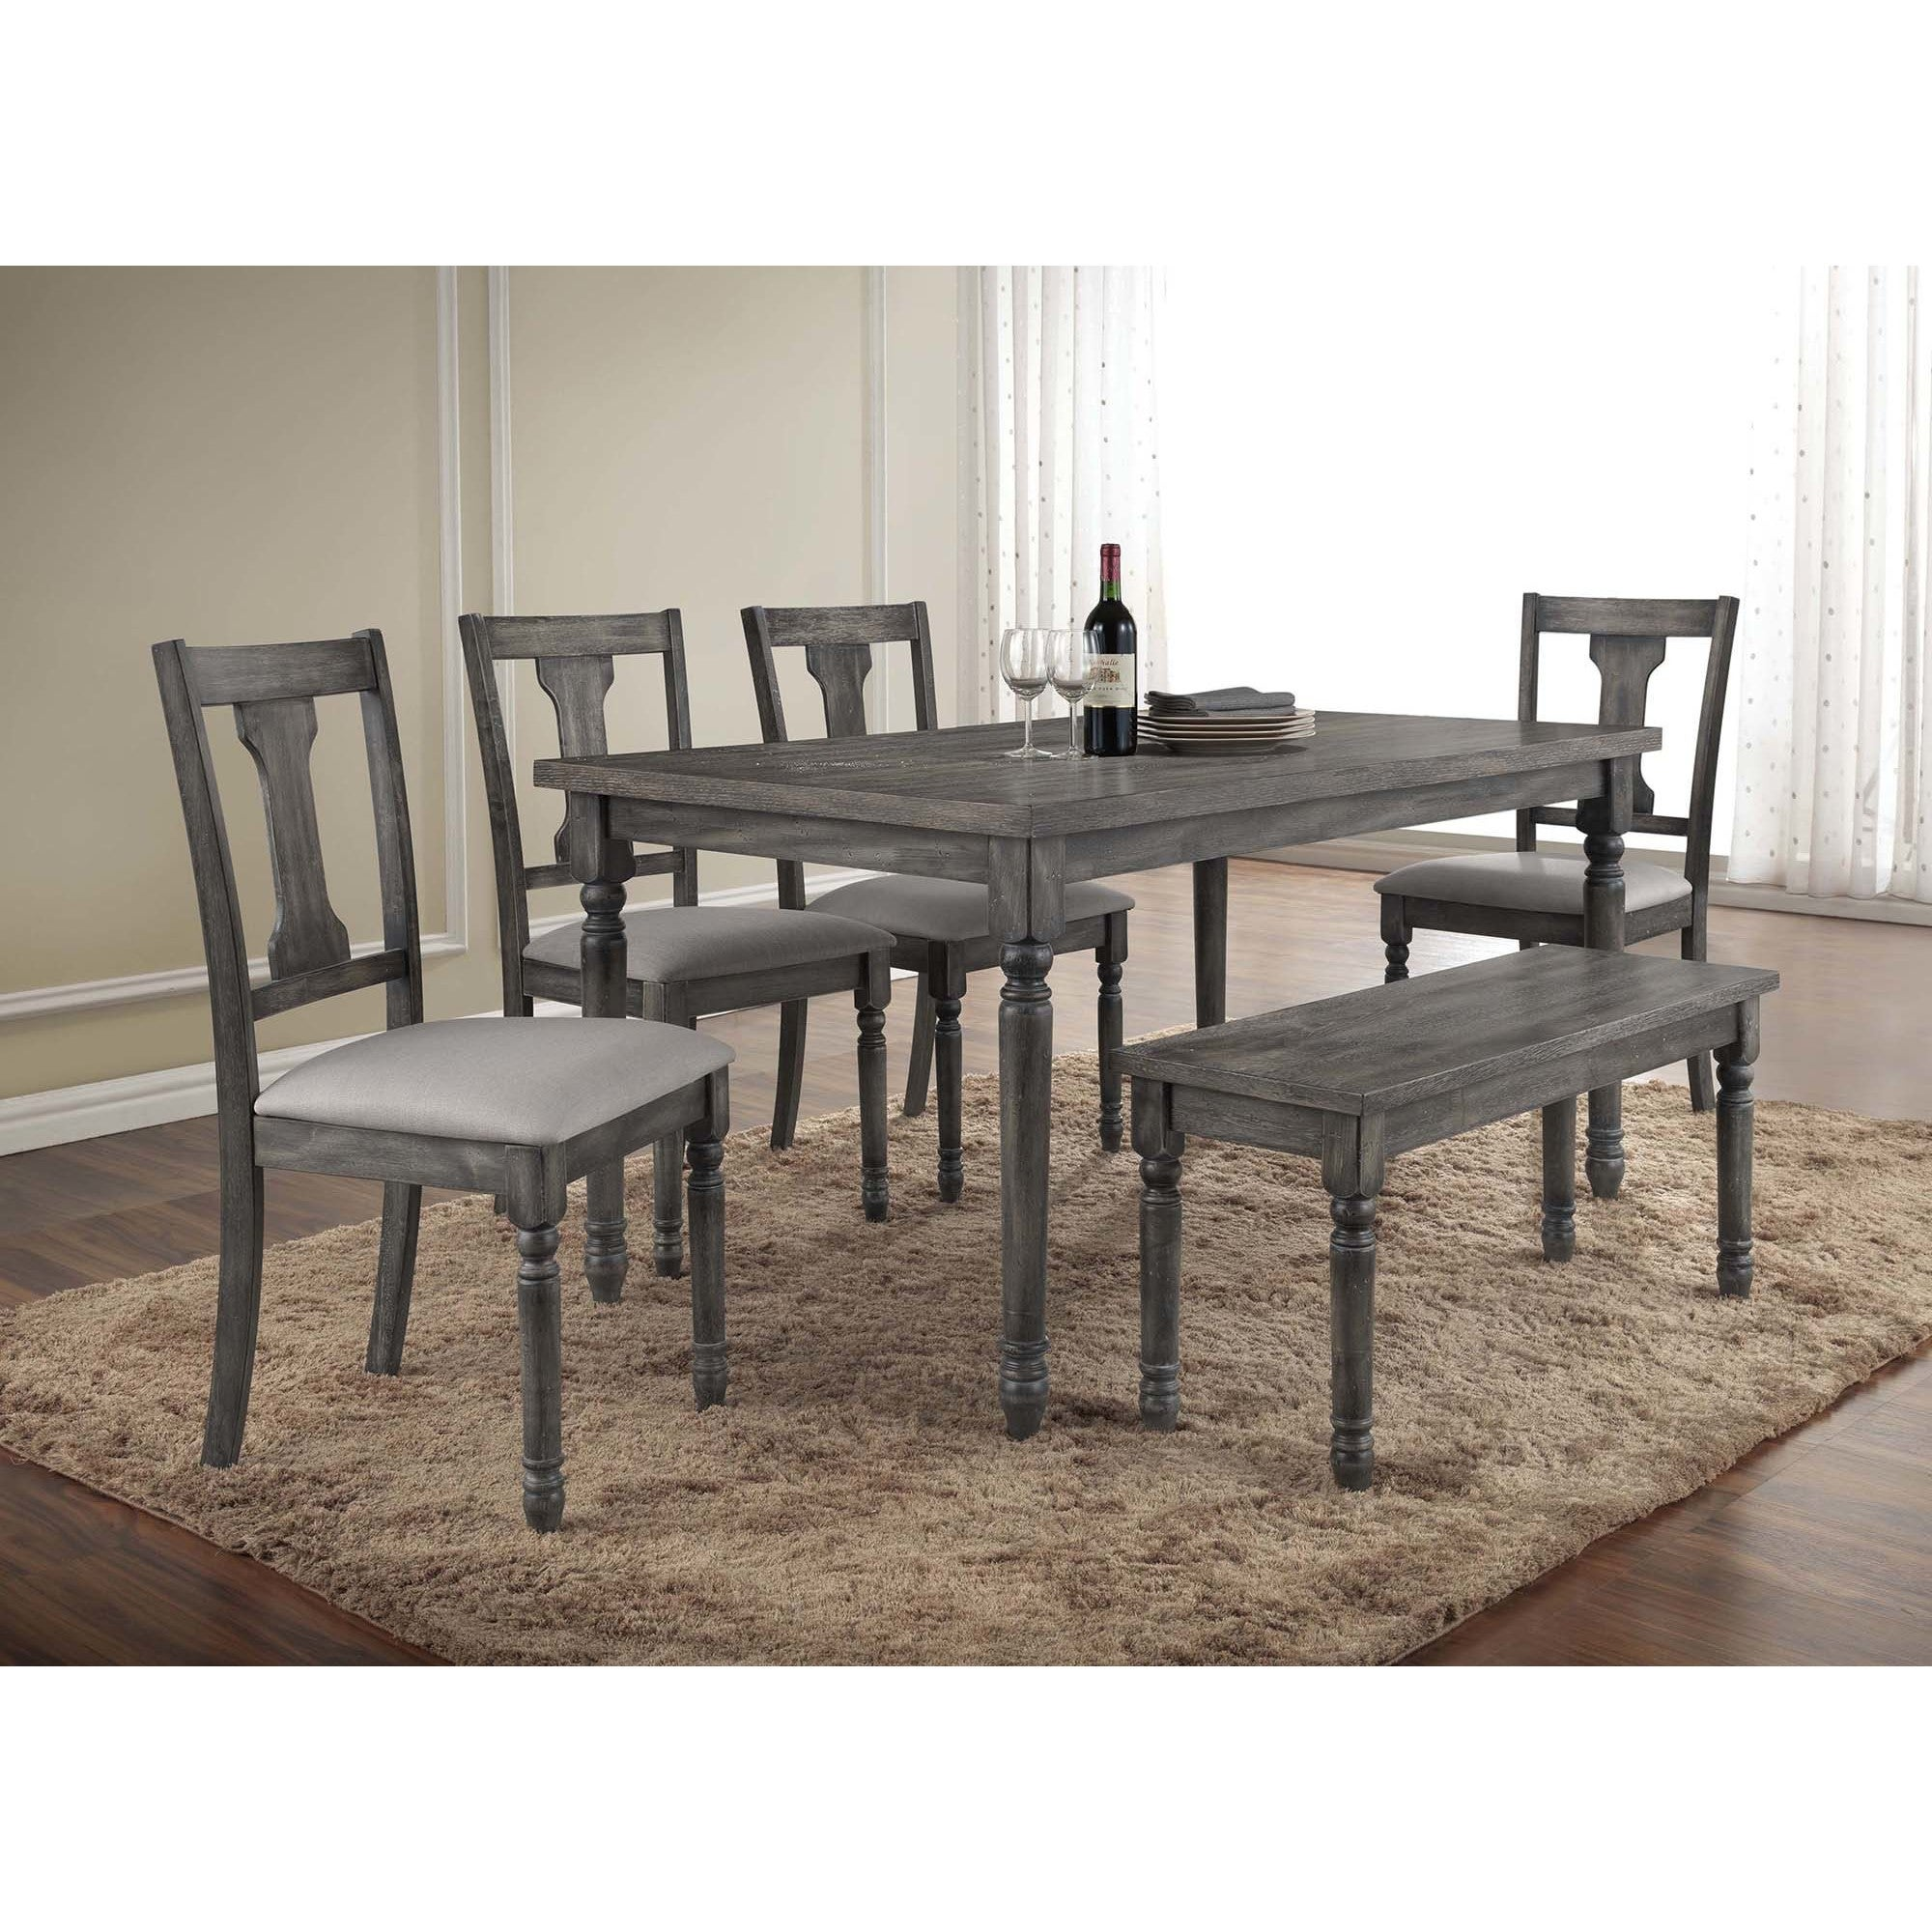 Best Master Furniture Demi Grey Wood And Veneer Distressed Dining Table Free Shipping Today 16306109